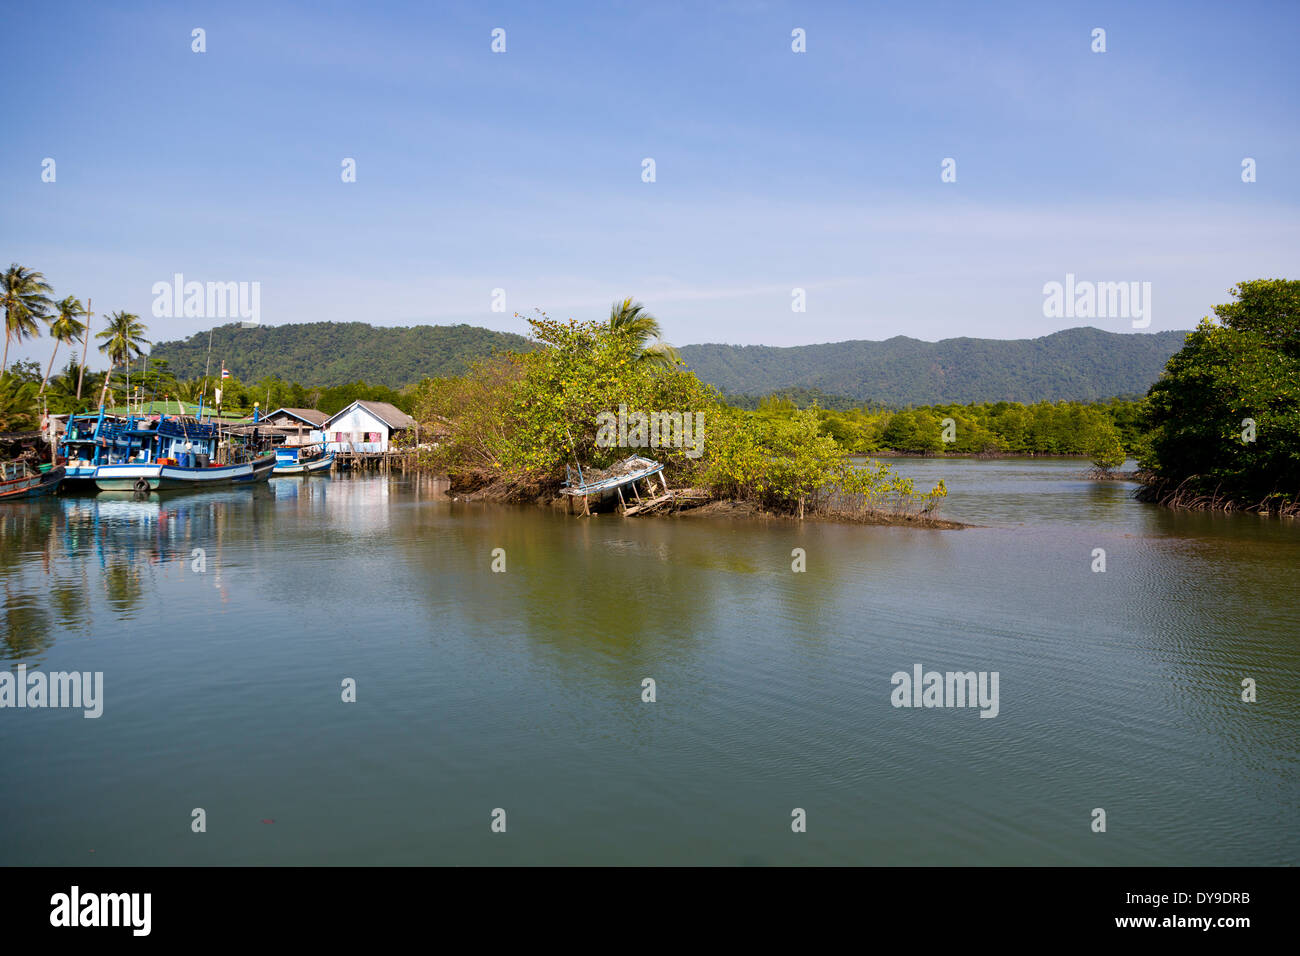 View over the Fishing Village Salak Phet on Ko Chang, Thailand - Stock Image